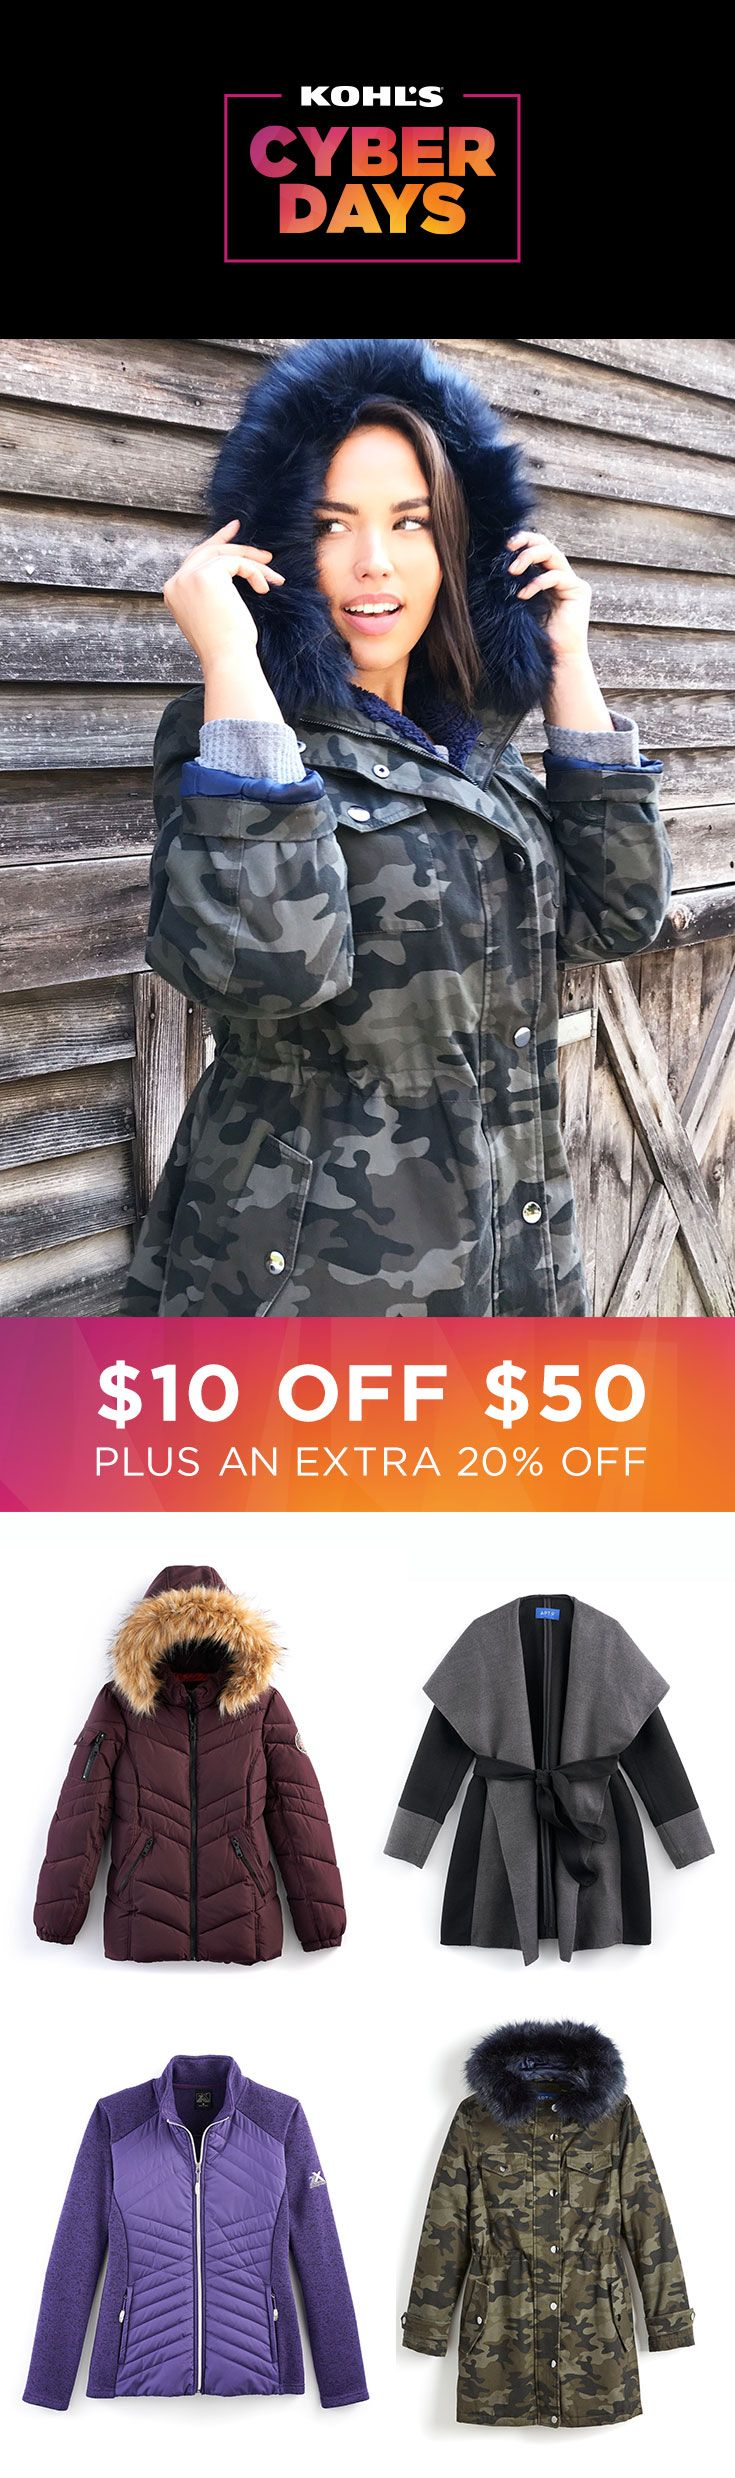 Winter is coming … save on bundling up while you can! Take $10 off your $50 outerwear purchase with promo code TUESDAY, plus take an extra 20% off with promo code BUYNOW20. Shop Cyber Days deals on outerwear at Kohl's. #winter #shopping #gifts